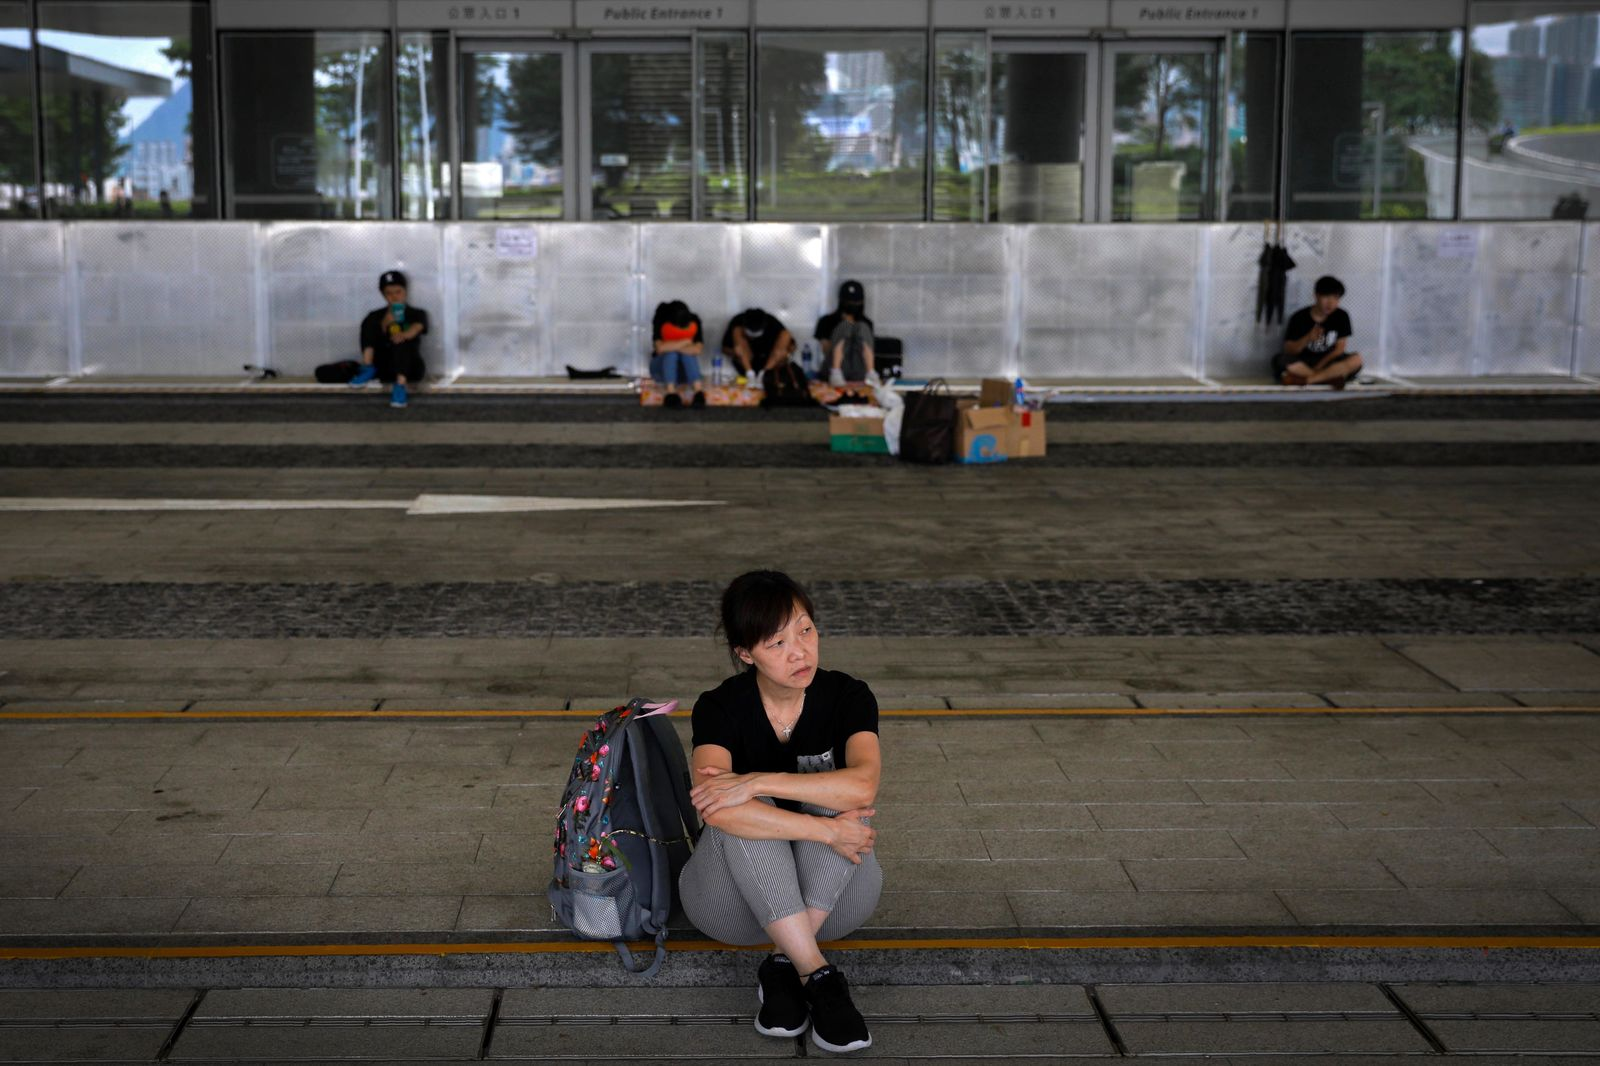 Protesters gather outside the Legislative Council following last weekend's massive protest against the unpopular extradition bill in Hong Kong, Tuesday, June 18, 2019. Hong Kong's government headquarters reopened Tuesday as the number of protesters outside dwindled to a few dozen and life returned to normal in the former British colony. (AP Photo/Vincent Yu)